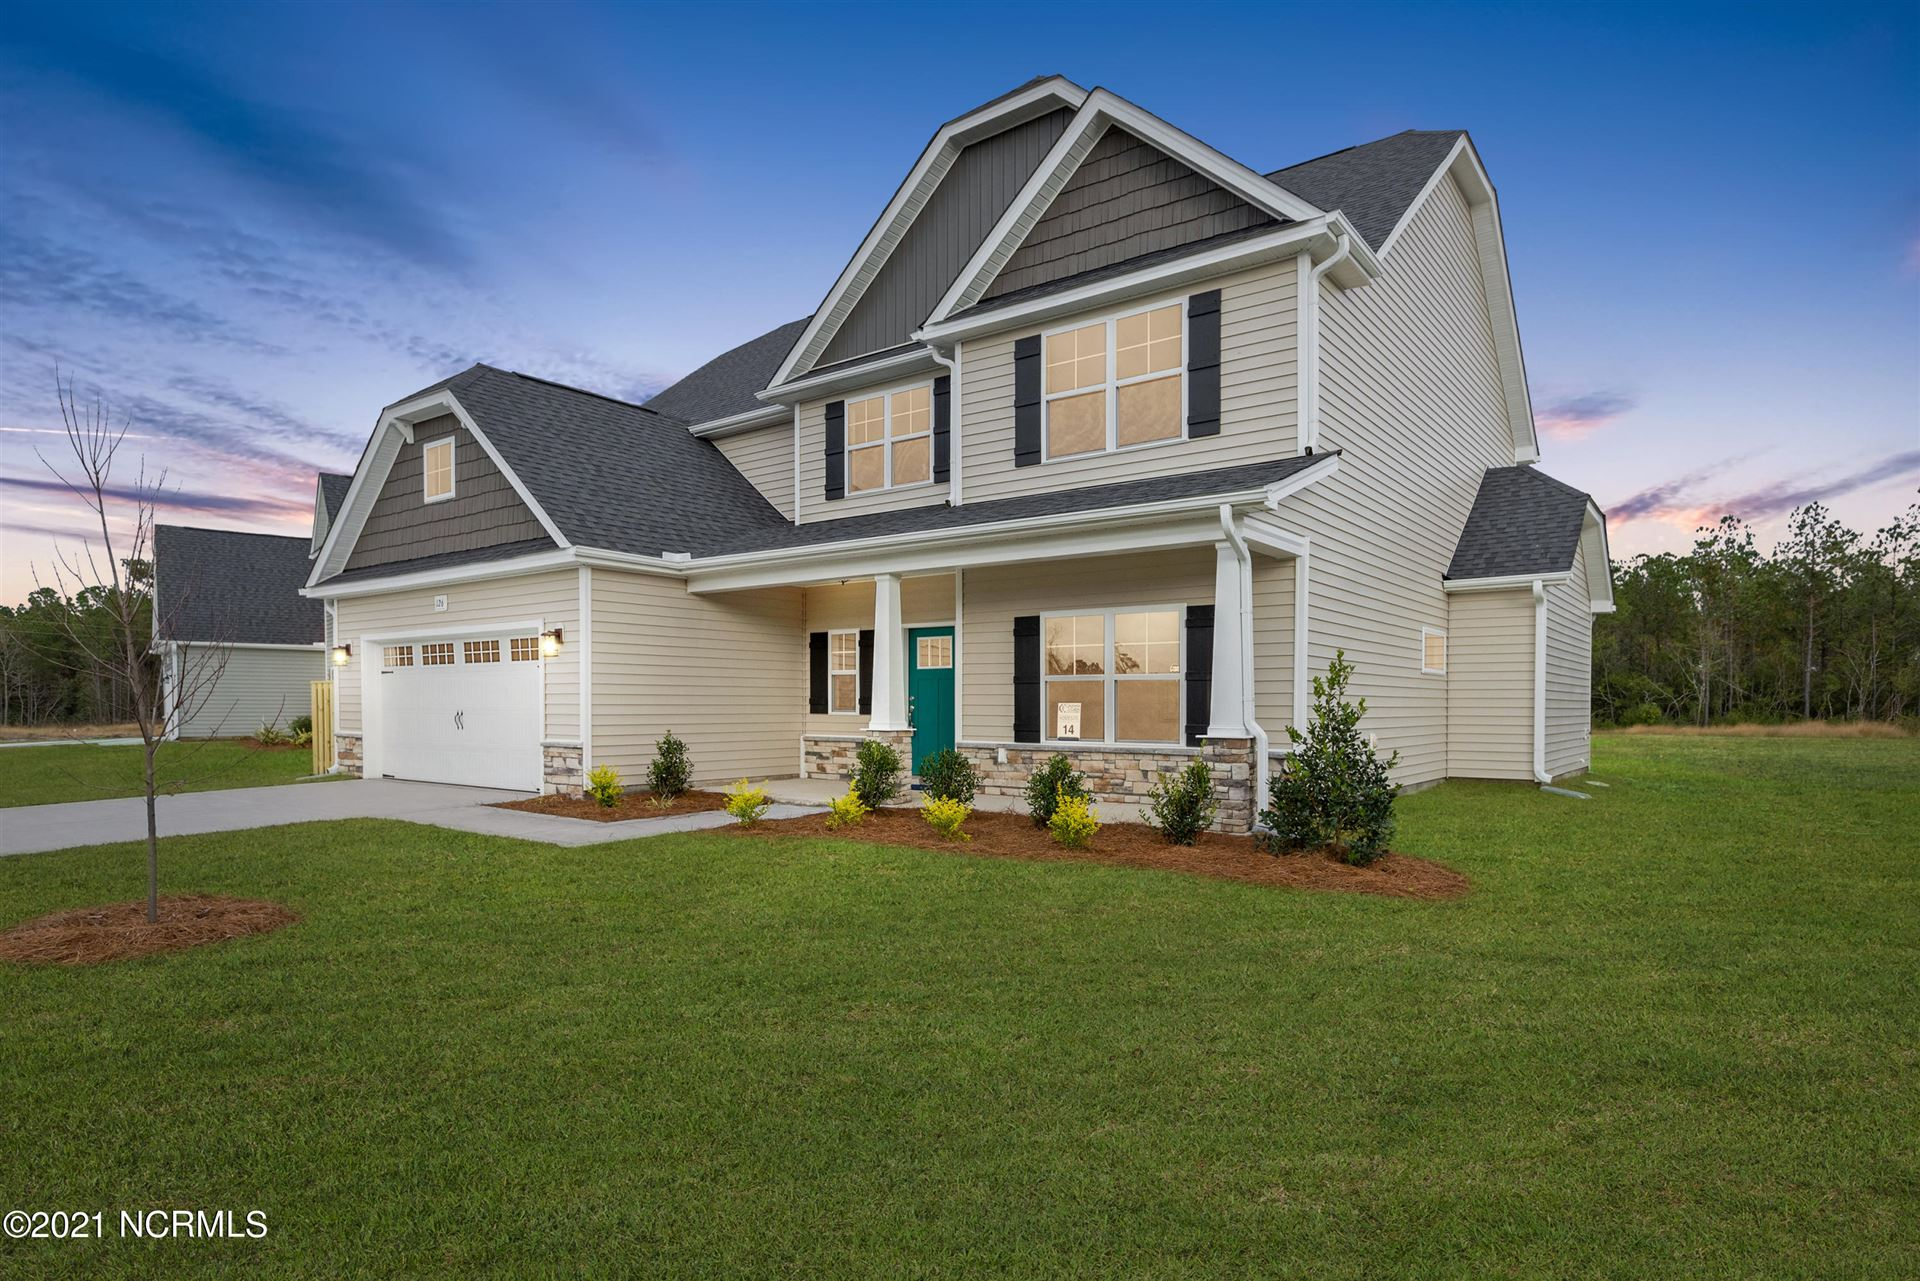 Photo of 306 Mckenzie Place, Sneads Ferry, NC 28460 (MLS # 100269079)